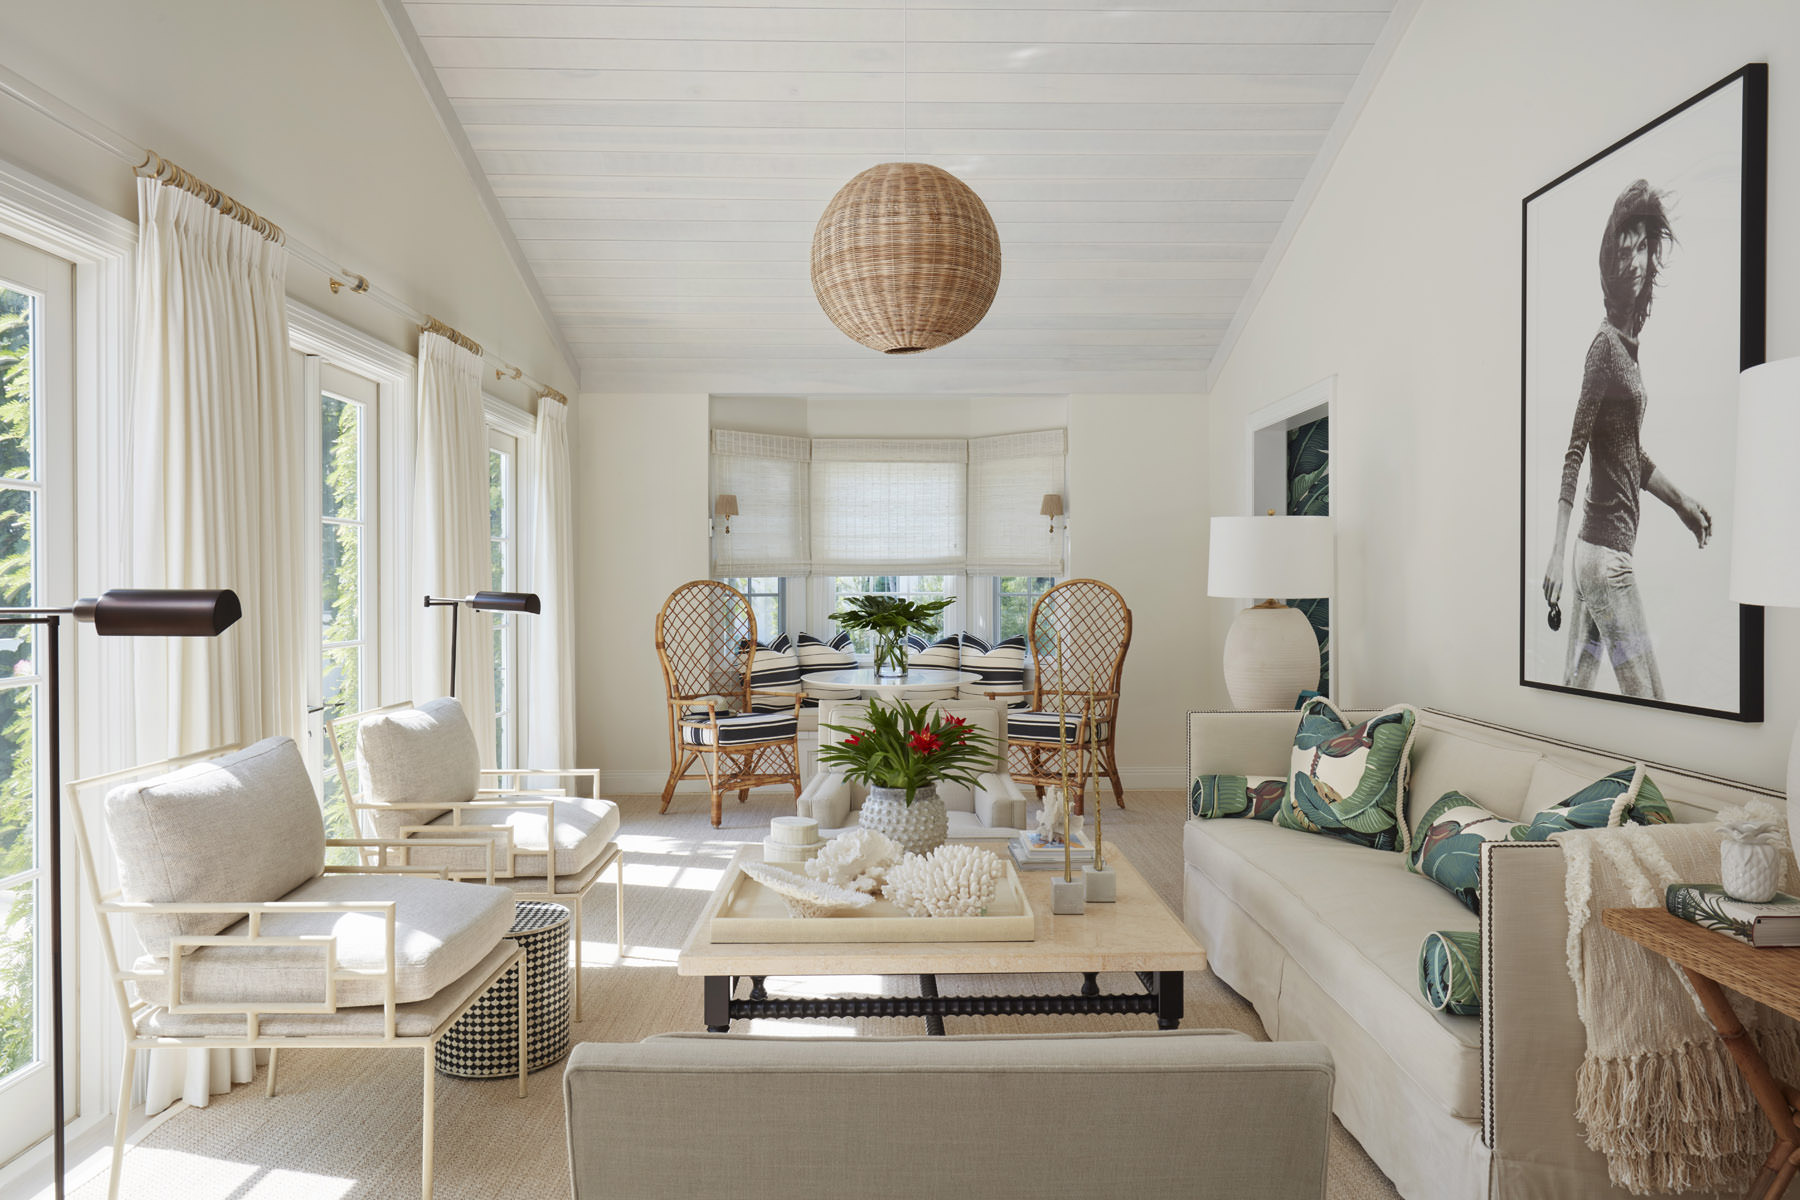 A palm beach home by lindsey lane katie considers Palm beach interior designers